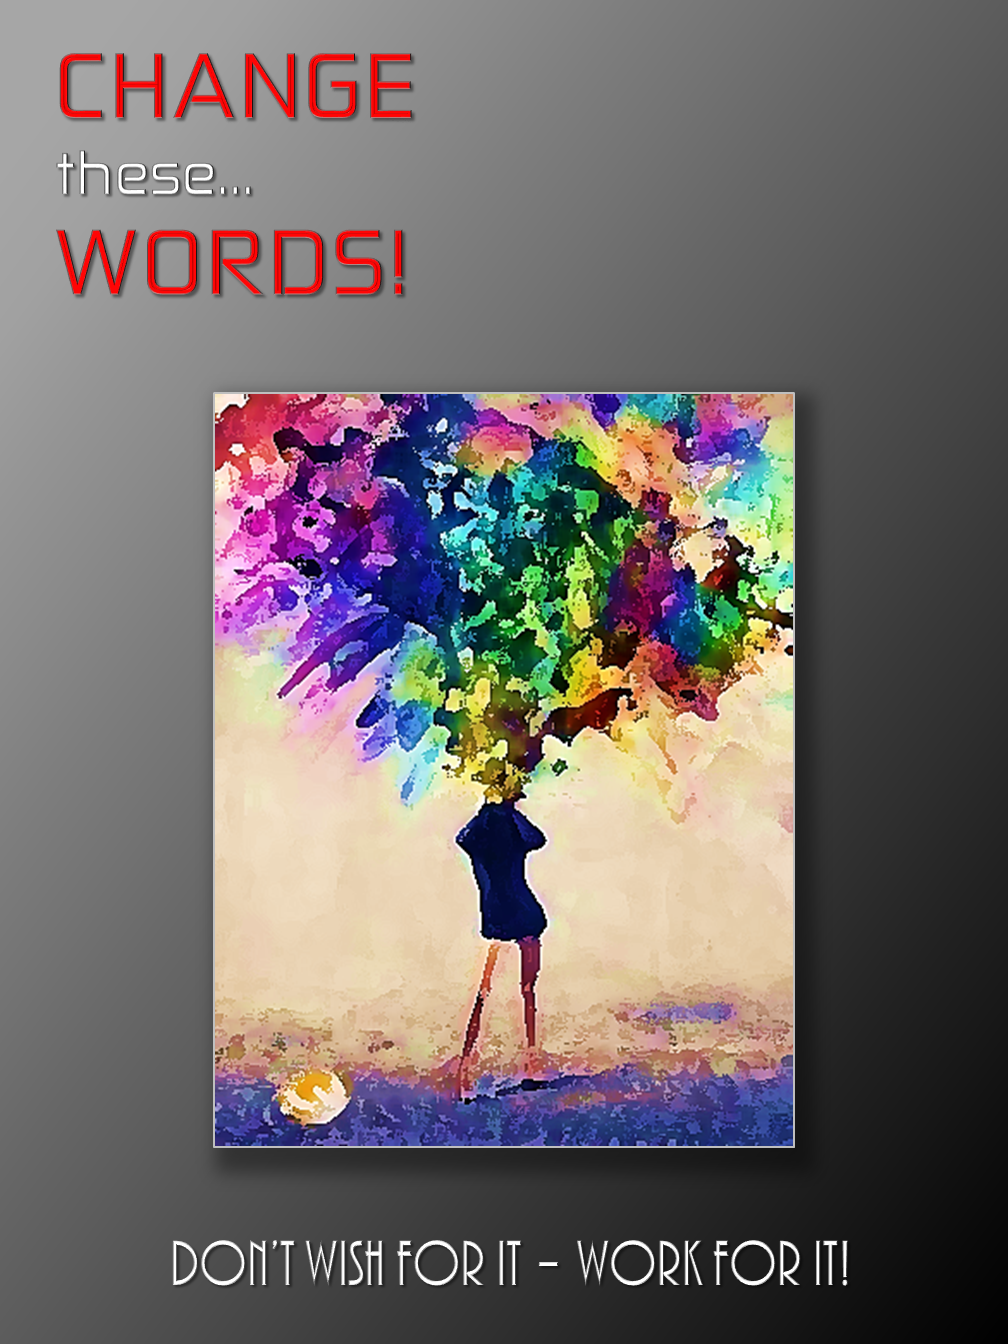 CHANGE these… WORDS!